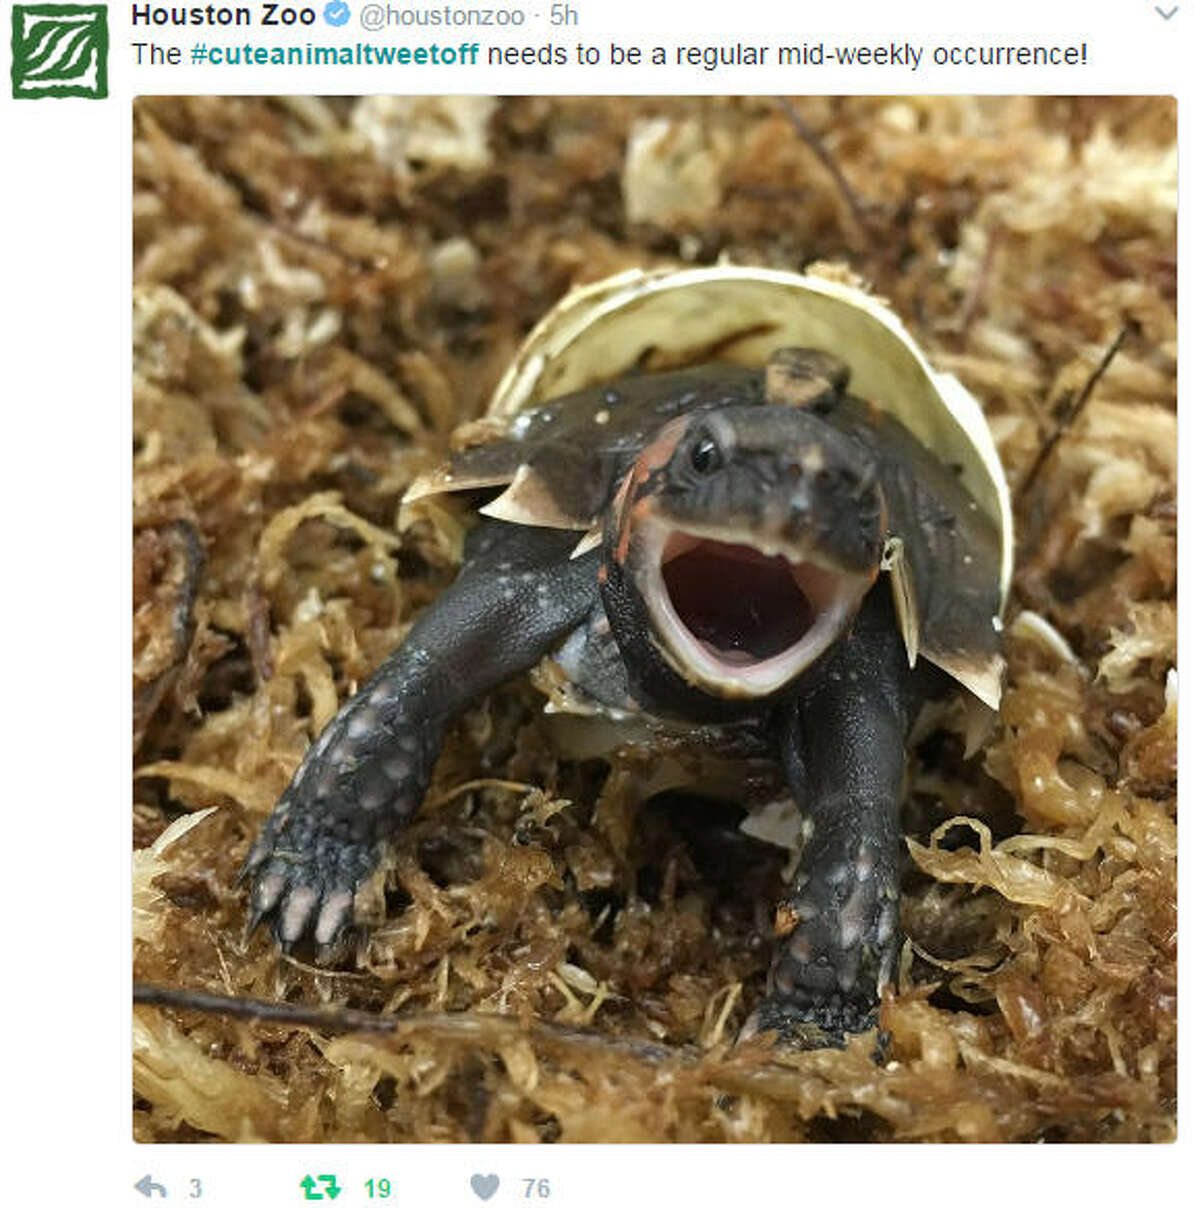 PHOTOS: Zoos around the country show off their cutest animals A handful of zoos and aquariums around the country began a battle of sorts, tweeting out photos of their cutest animals. Photo: The Houston Zoo Click through for images of some of the cutest animals in America...